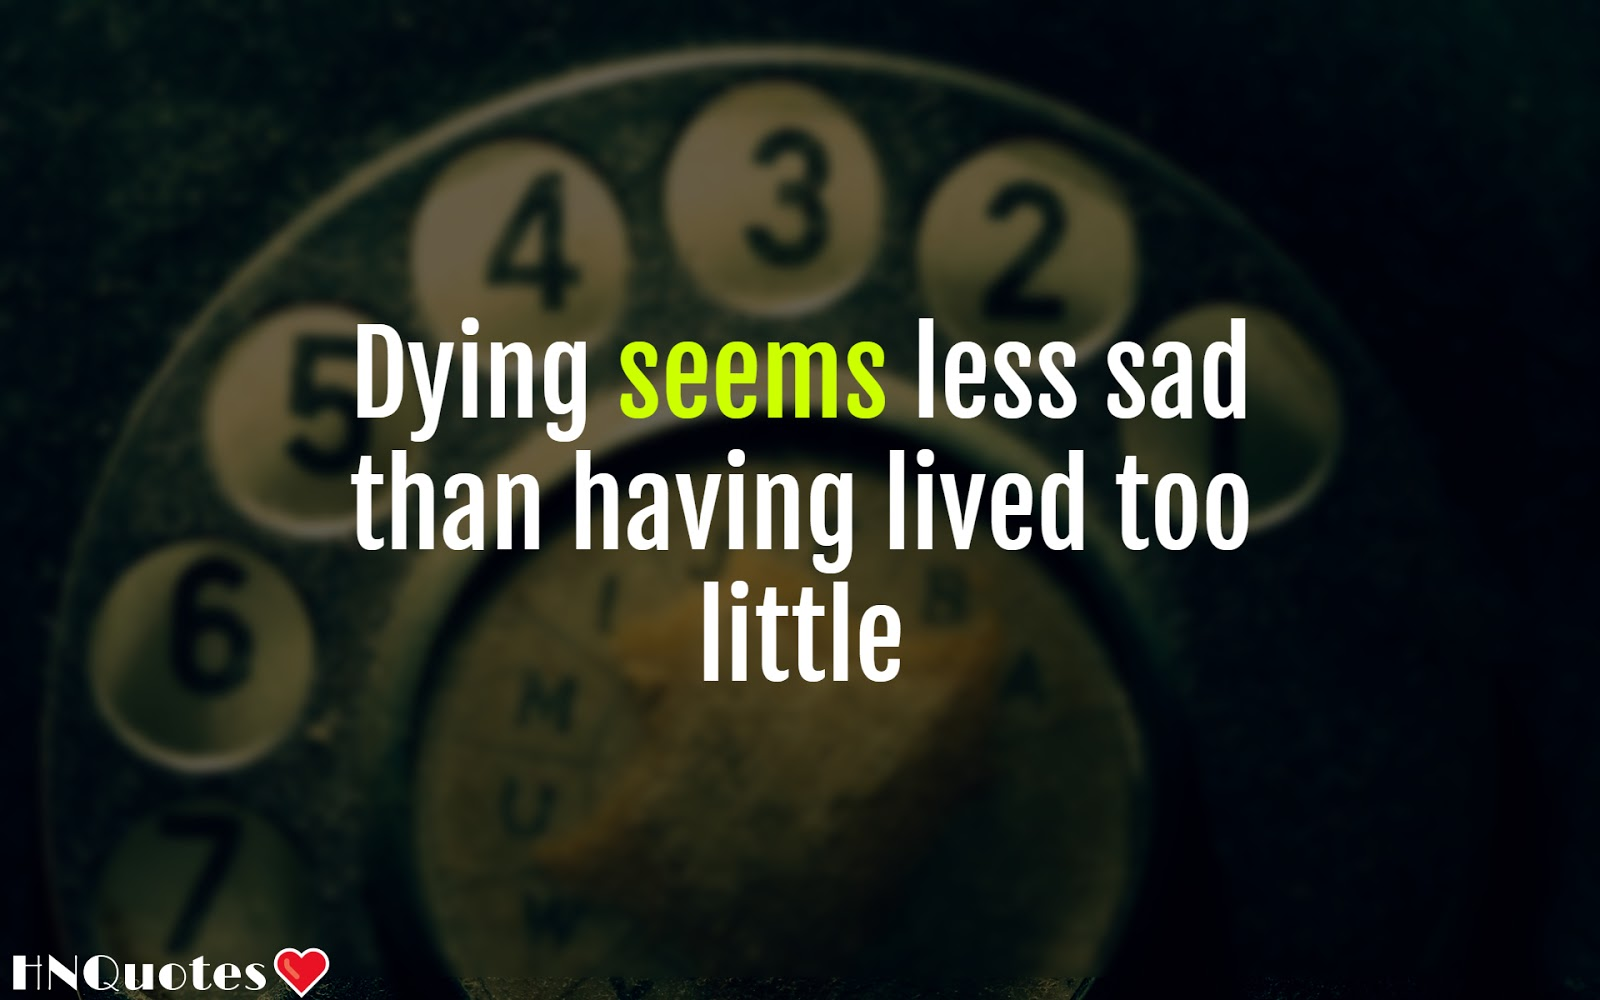 Sad-&-Emotional-Quotes-on-Life-73-Best-Emotional-Quotes[HNQuotes]